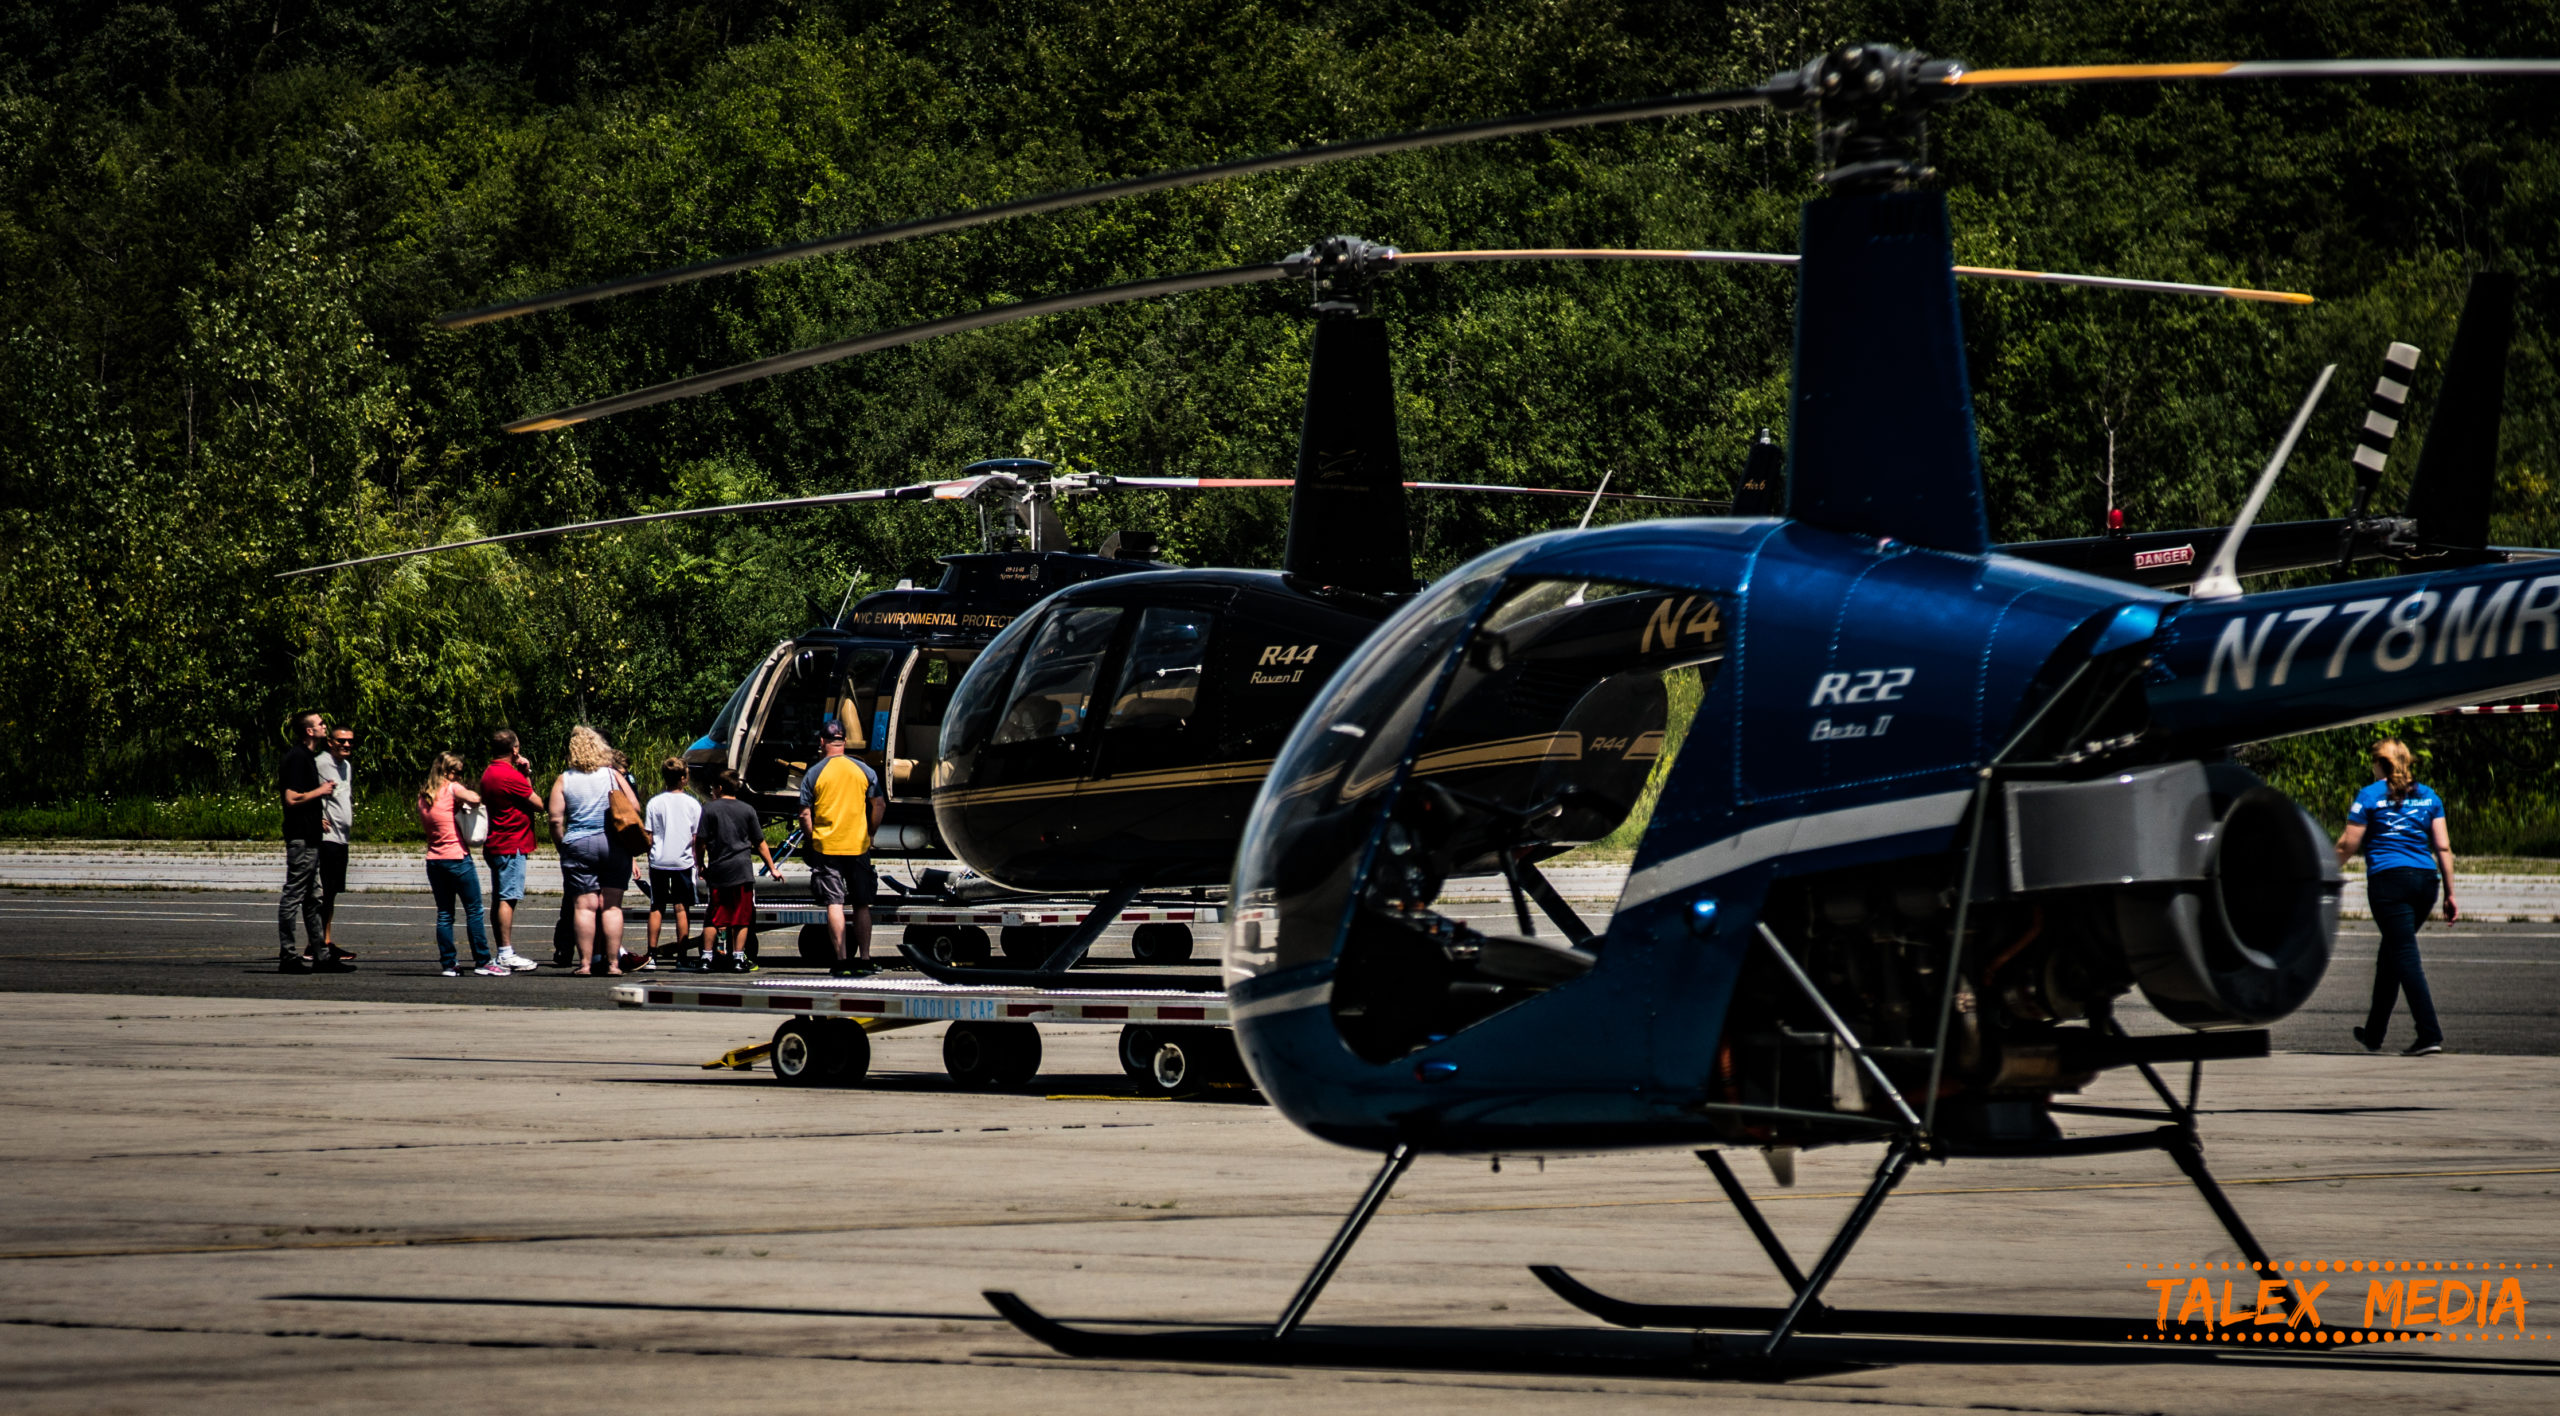 World Helicopter Day at Stewart Airport